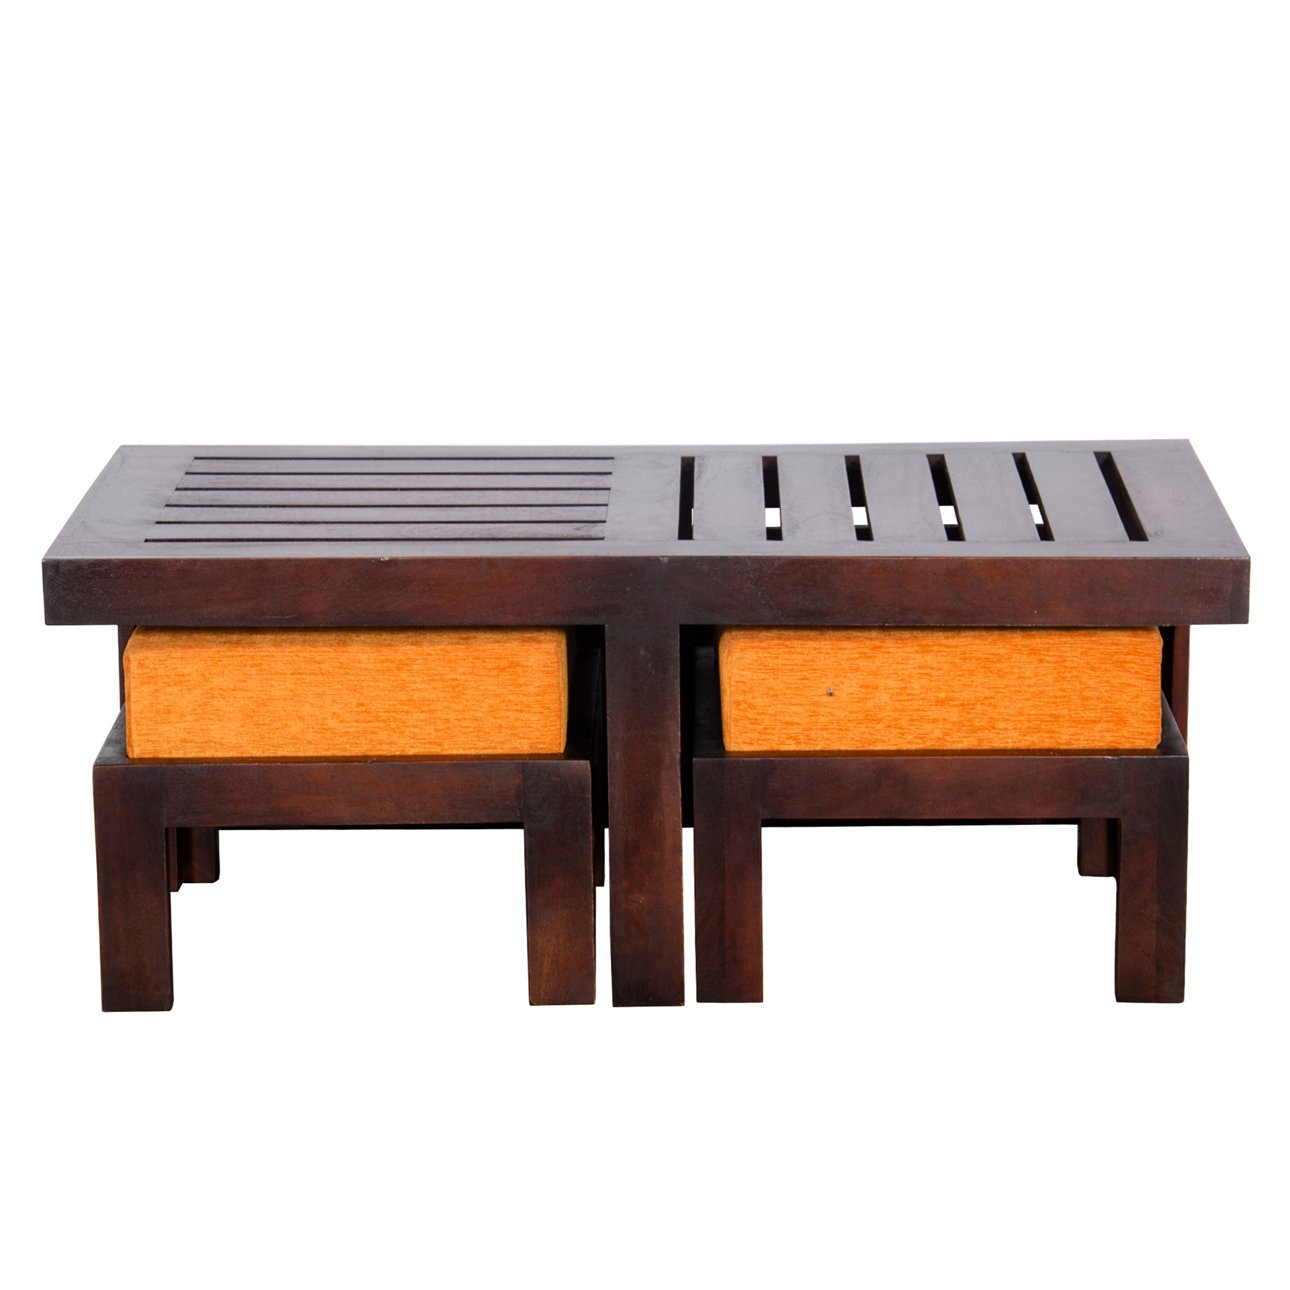 Indian Style Coffee Table Coffee Tables Buy Coffee Tables Online At Low Prices In India